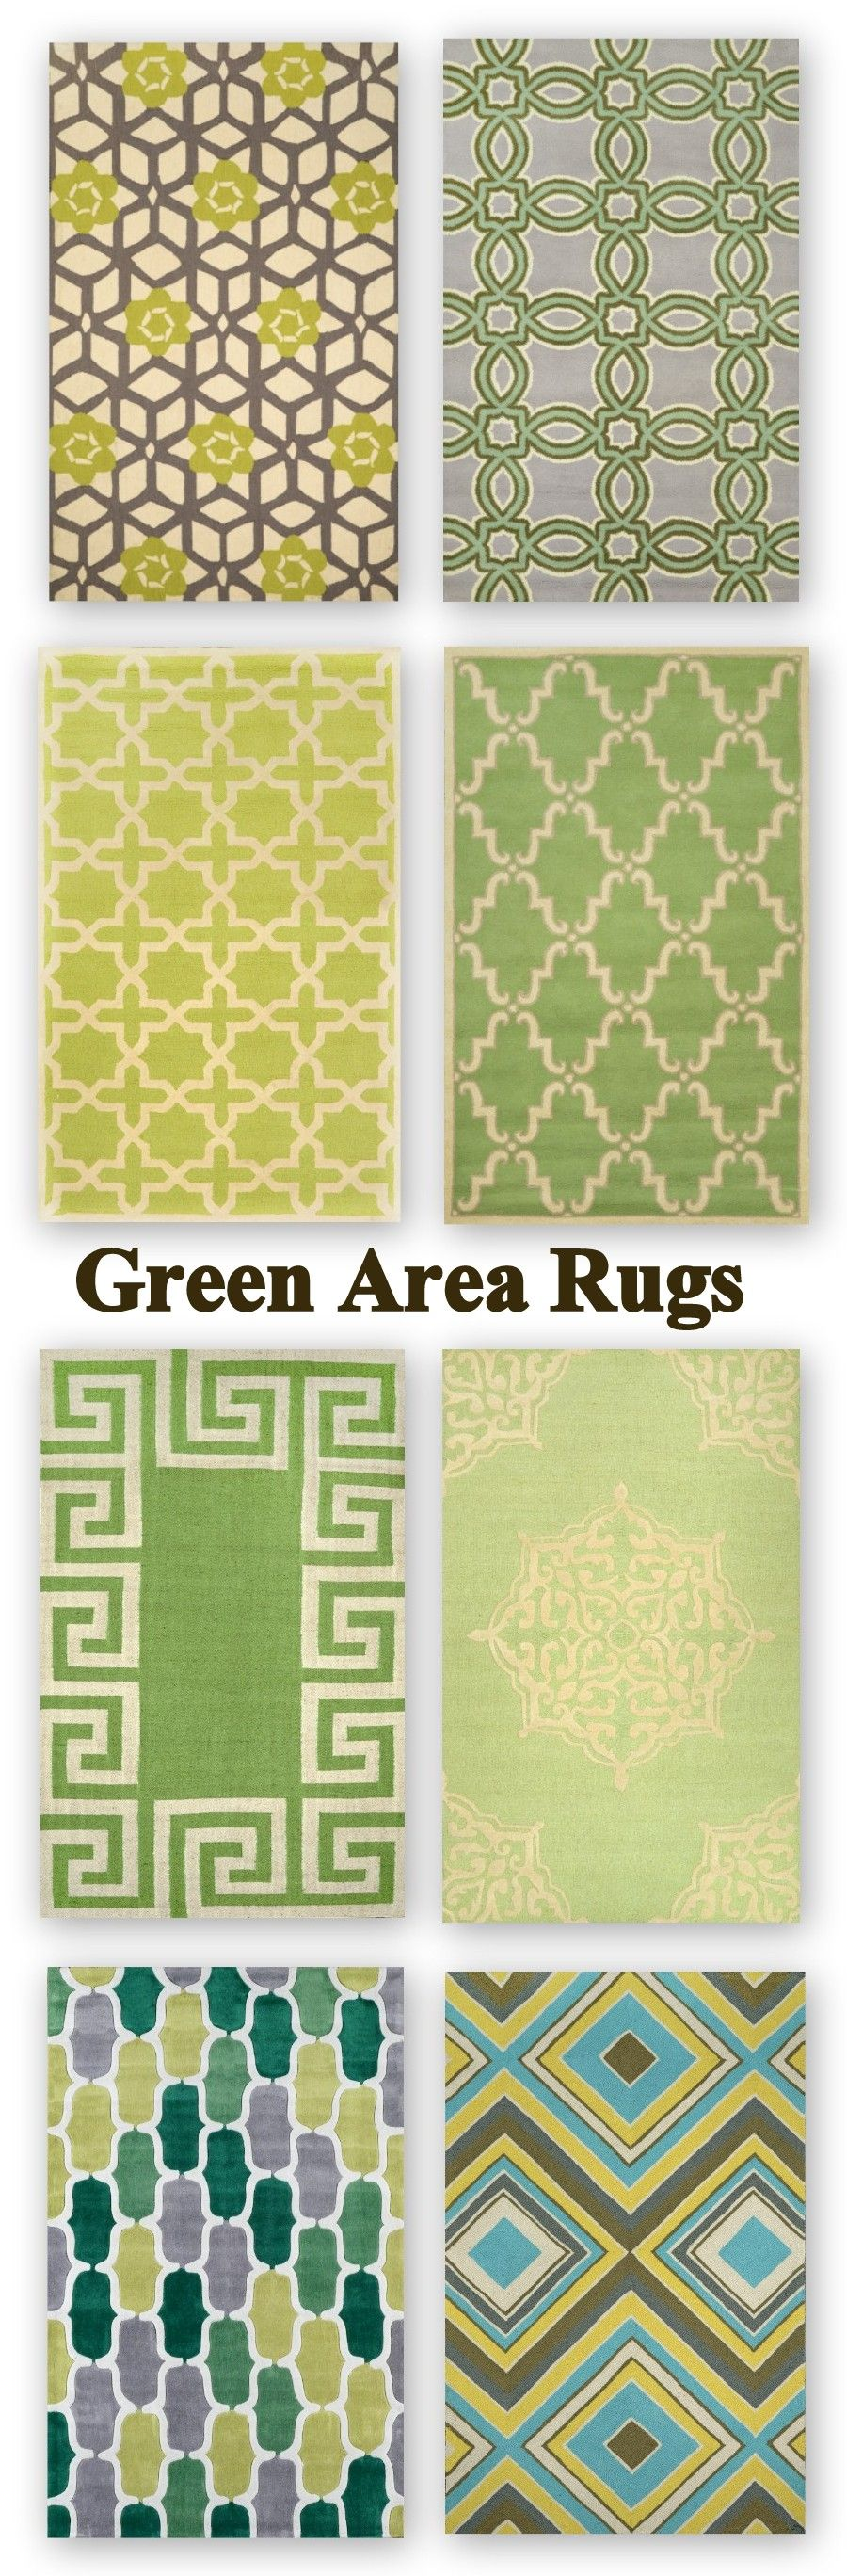 Rugs USA End of Summer Sale up to 80% Off! Area rug, rug, carpet, design, style, home decor, interior design, pattern, trends, home, statement, fall, autumn, cozy, sale, discount, interiors, house, free shipping.